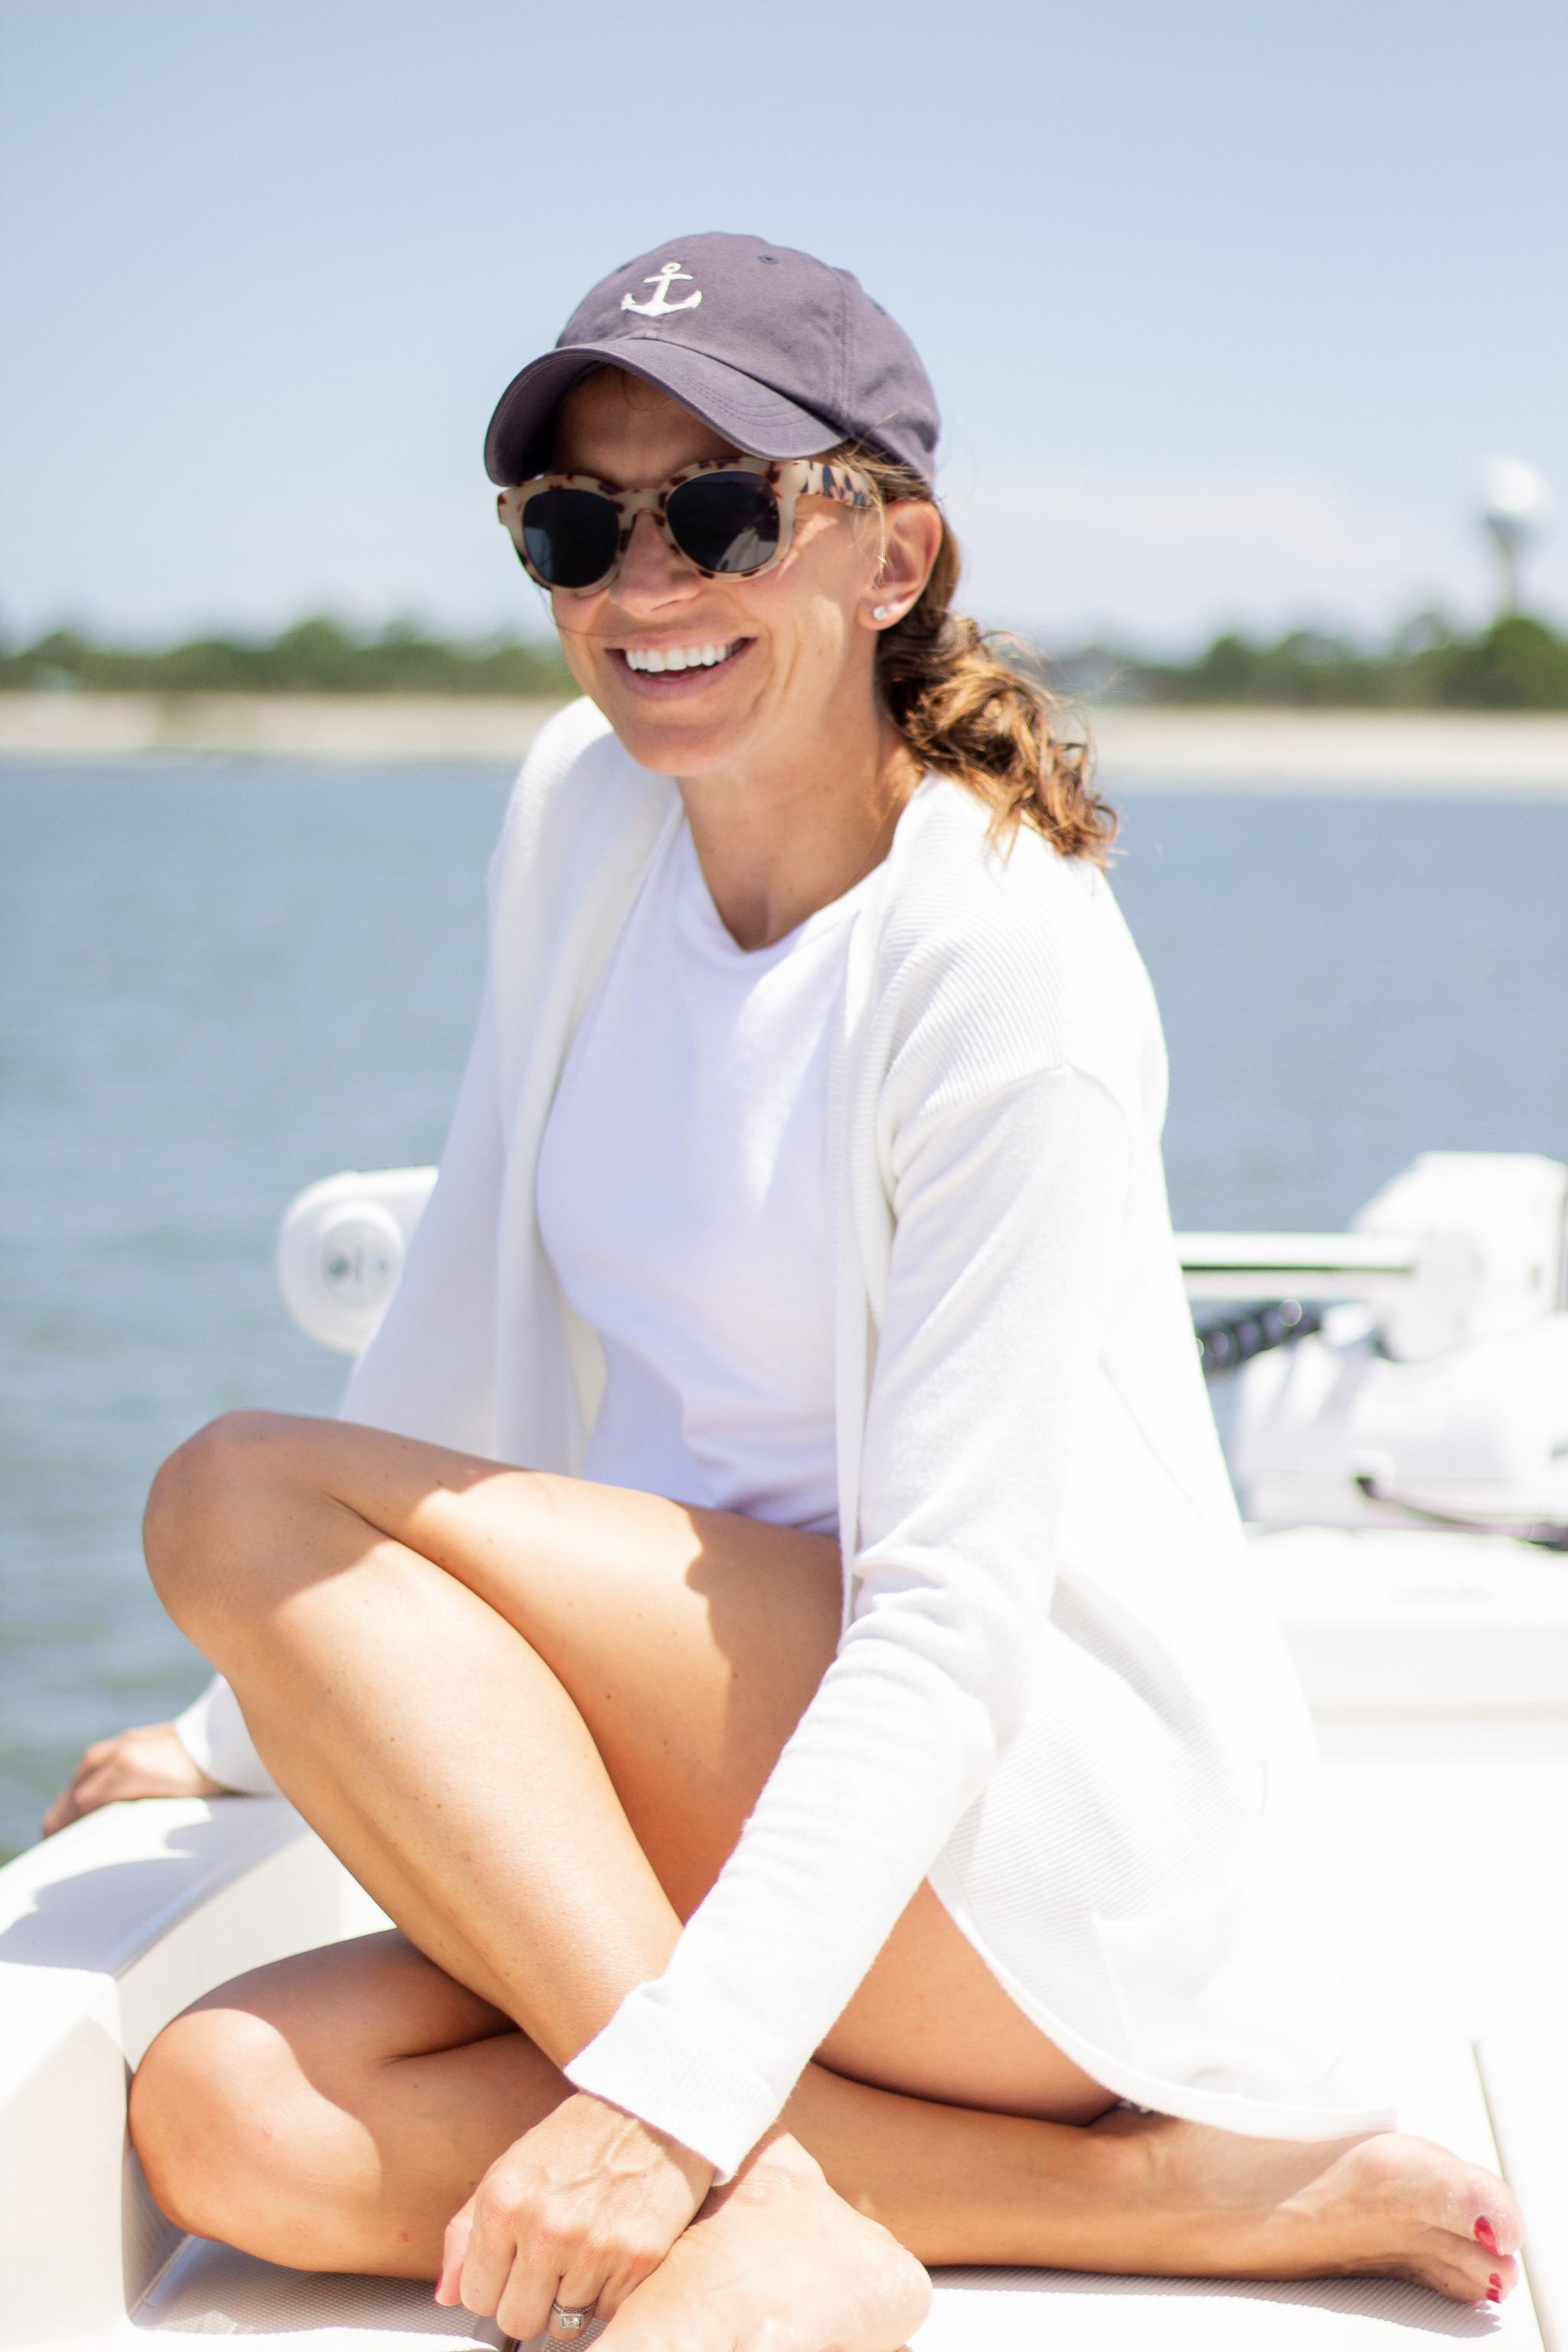 fripp island - lowcountry vacation - family beach vacation - boating outfit idea - madison mathews gingham shorts - walmart high neck tank top - tortoise shell sunglasses - navy baseball cap